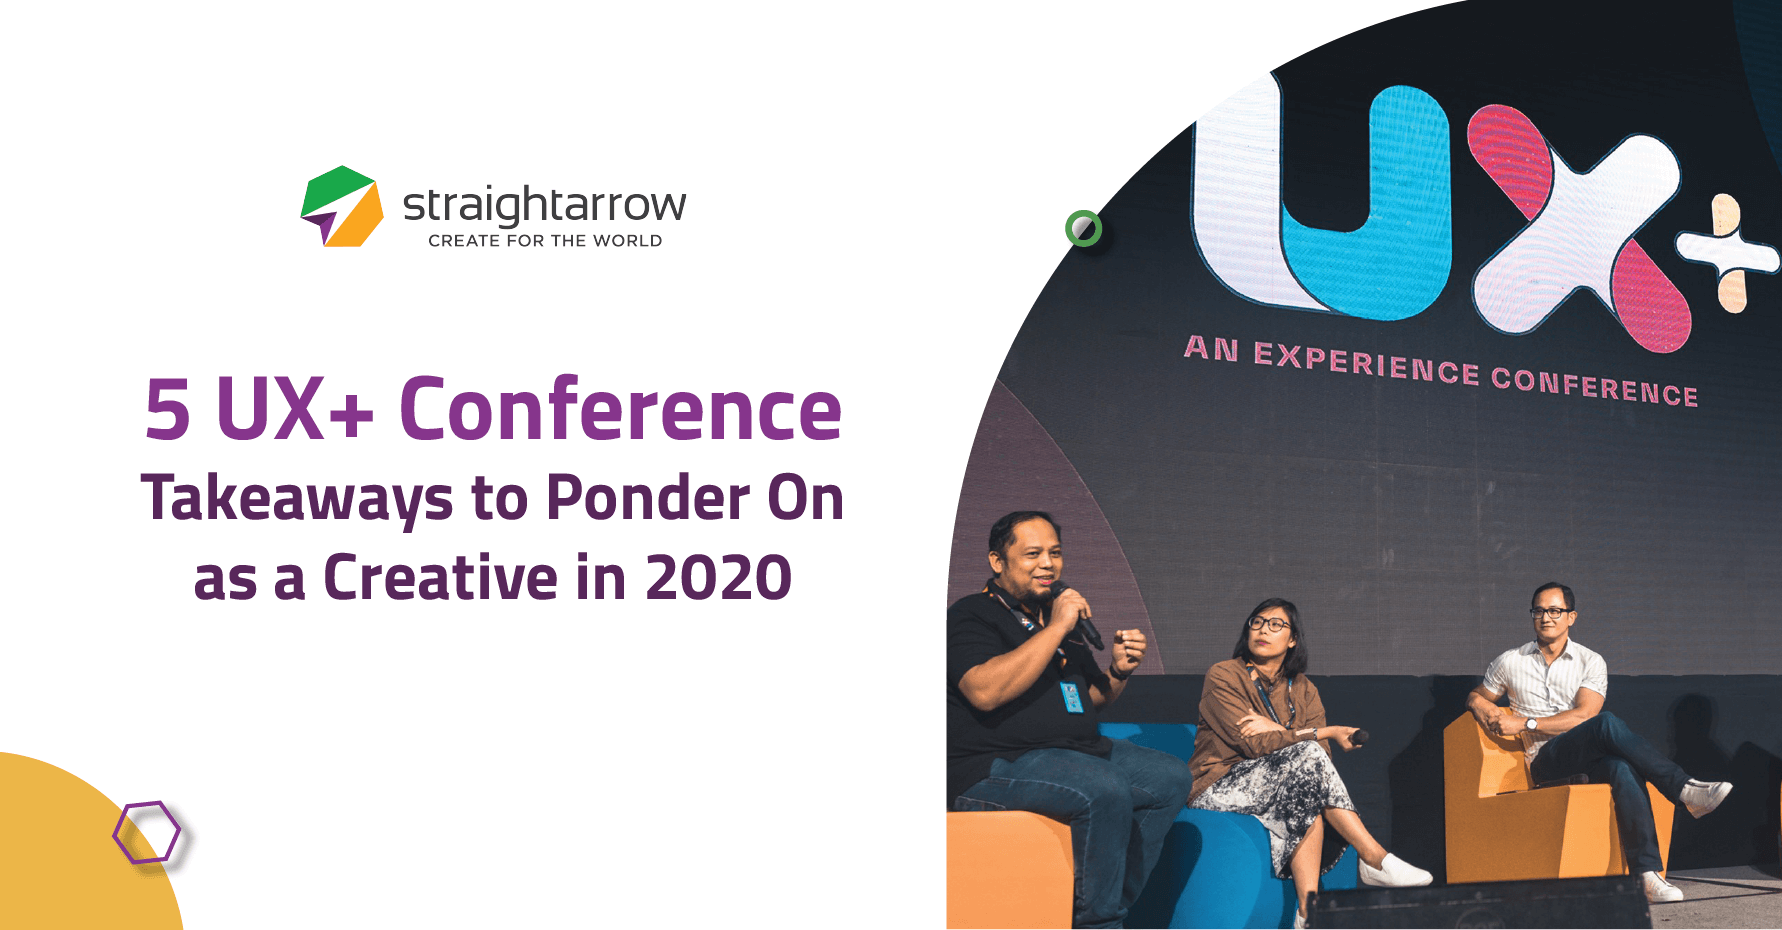 5 UX+ Conference Takeaways to Ponder On as a Creative in 2020